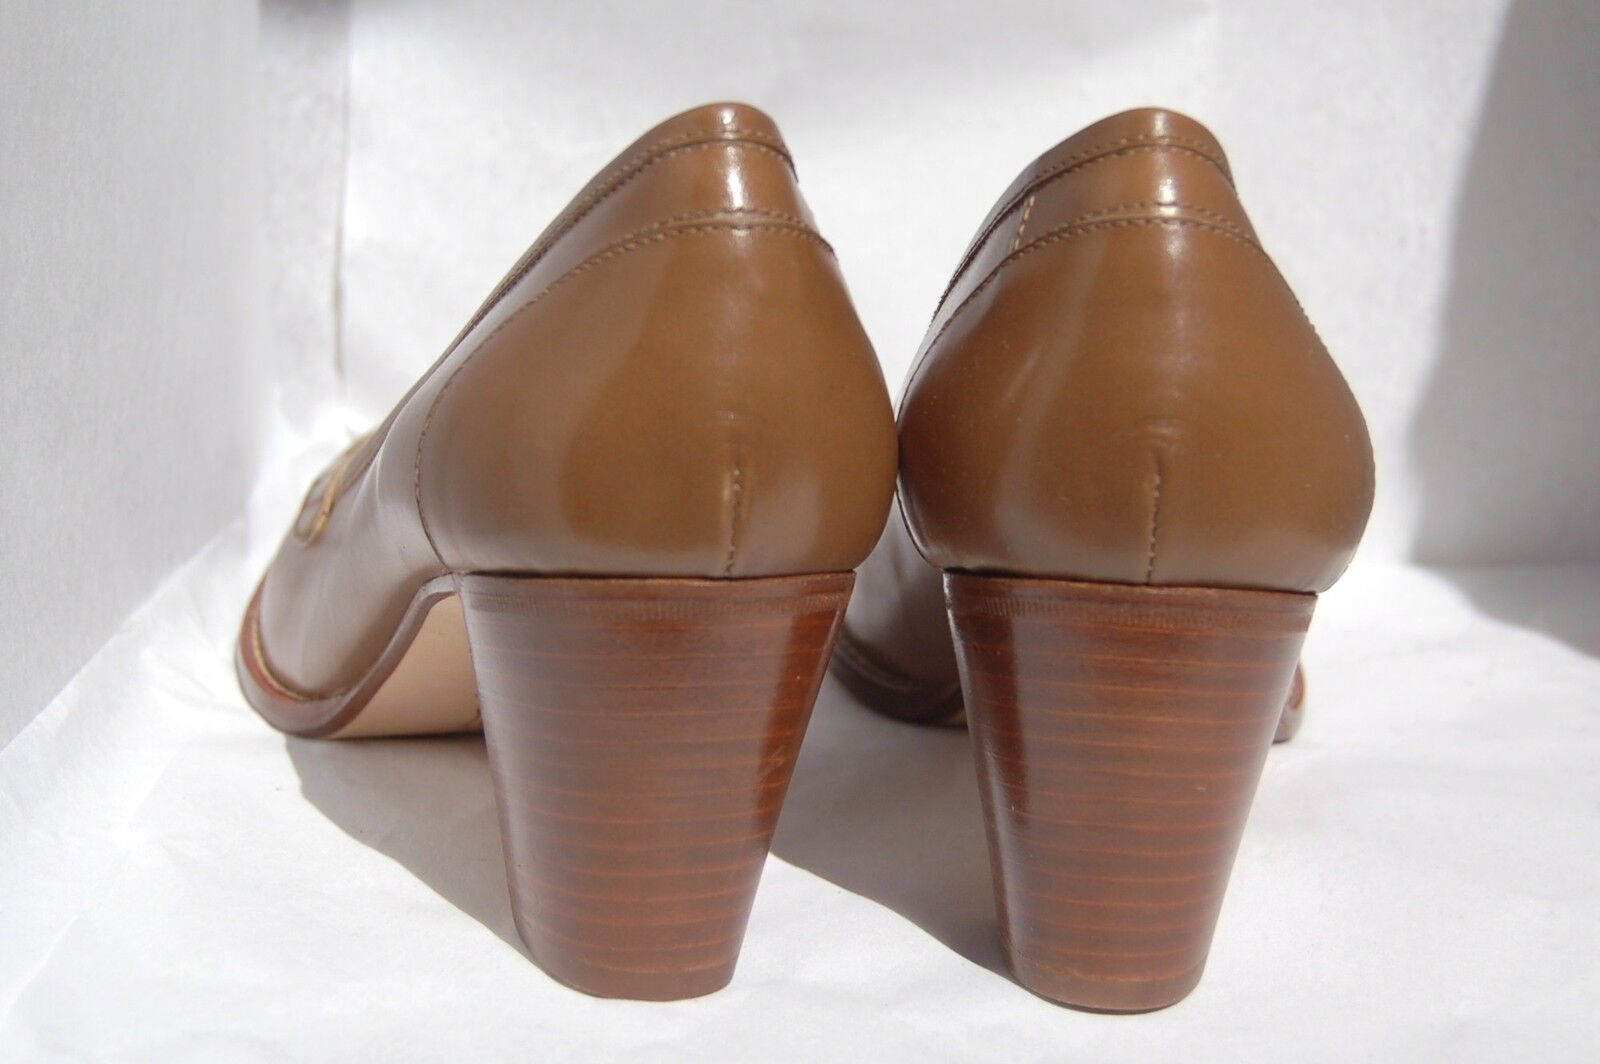 WOMAN - 40 - PENNY LOAFER - - SOFTY CALF TAUPE - - LEATHER SOLE - HEEL 7cm - LINING 87cfcc